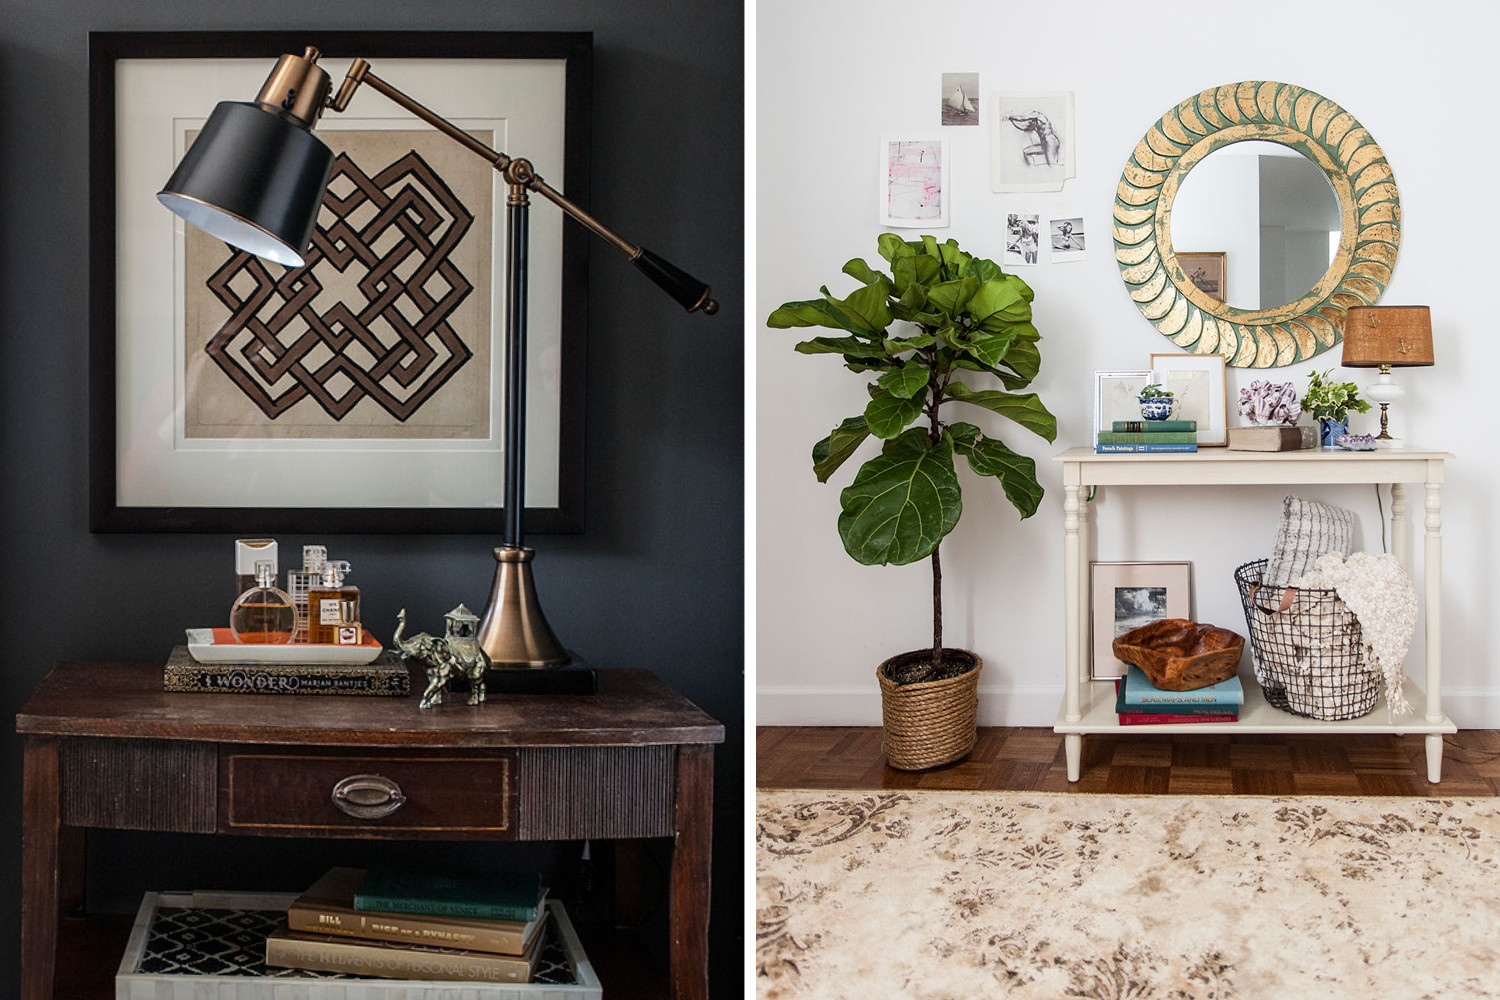 Before after at home with homegoods october 2014 lonny for Home goods fall decorations